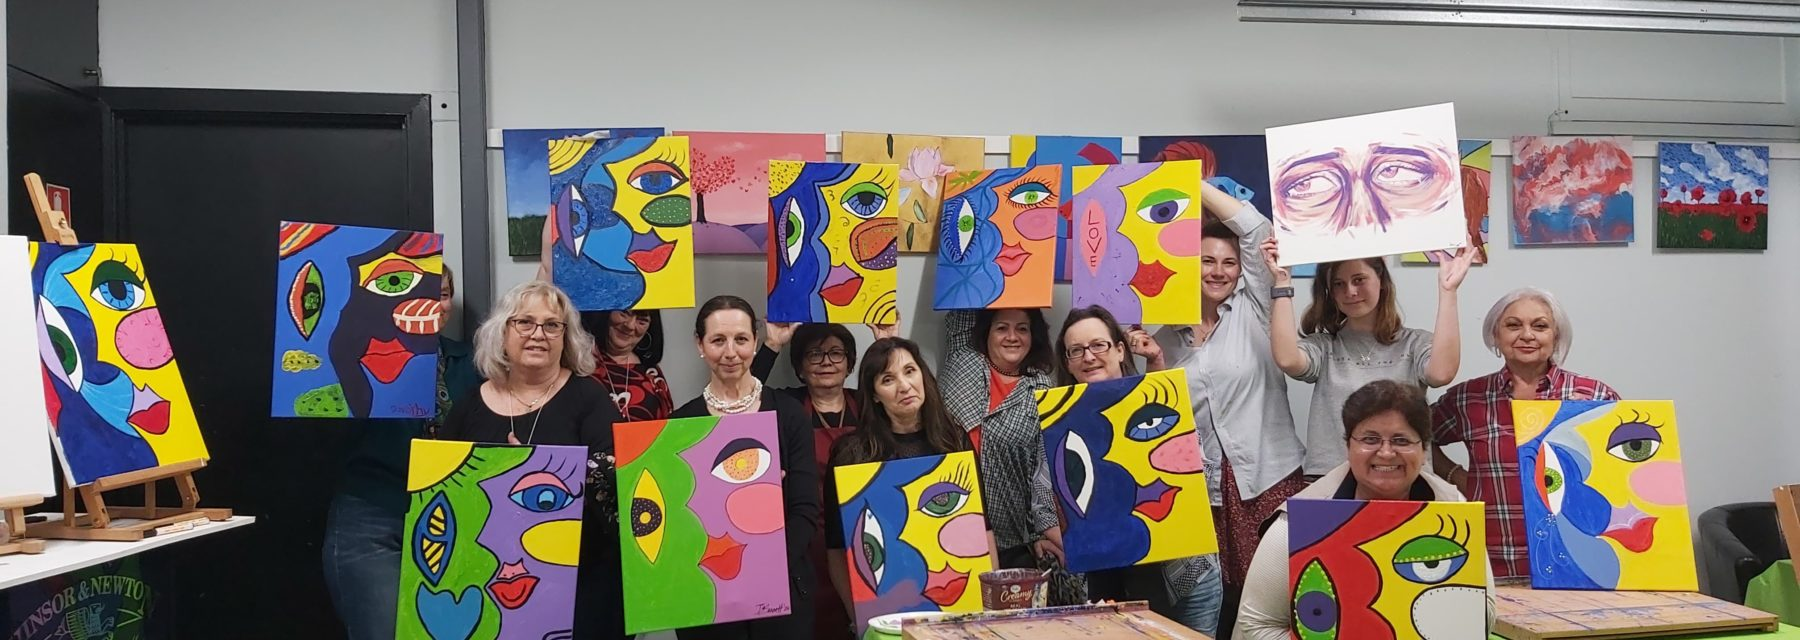 In Person Paint Class2